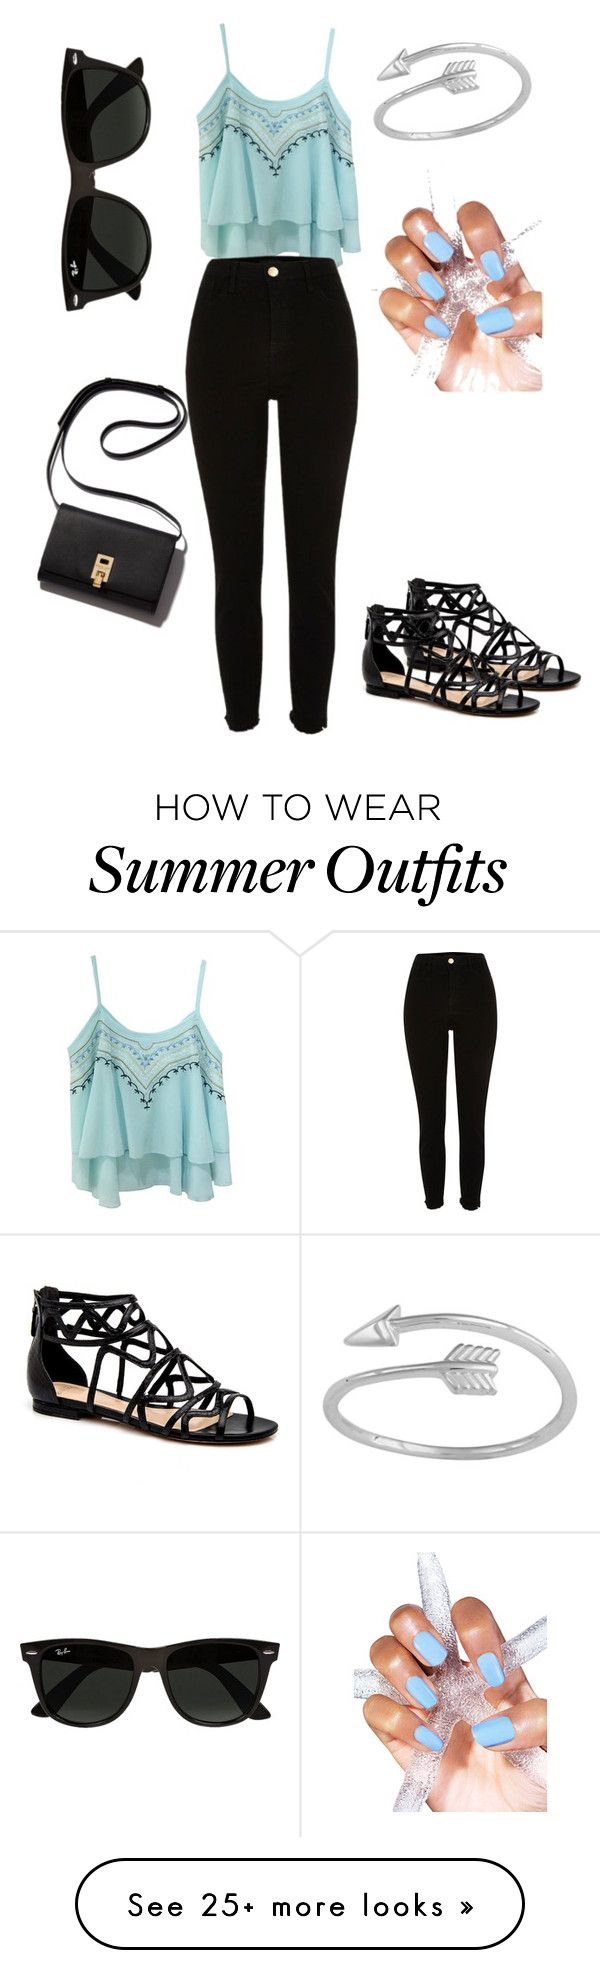 """fun summer outfit"" by what-ever-you-say on Polyvore featuring Mode und Ray-Ban"